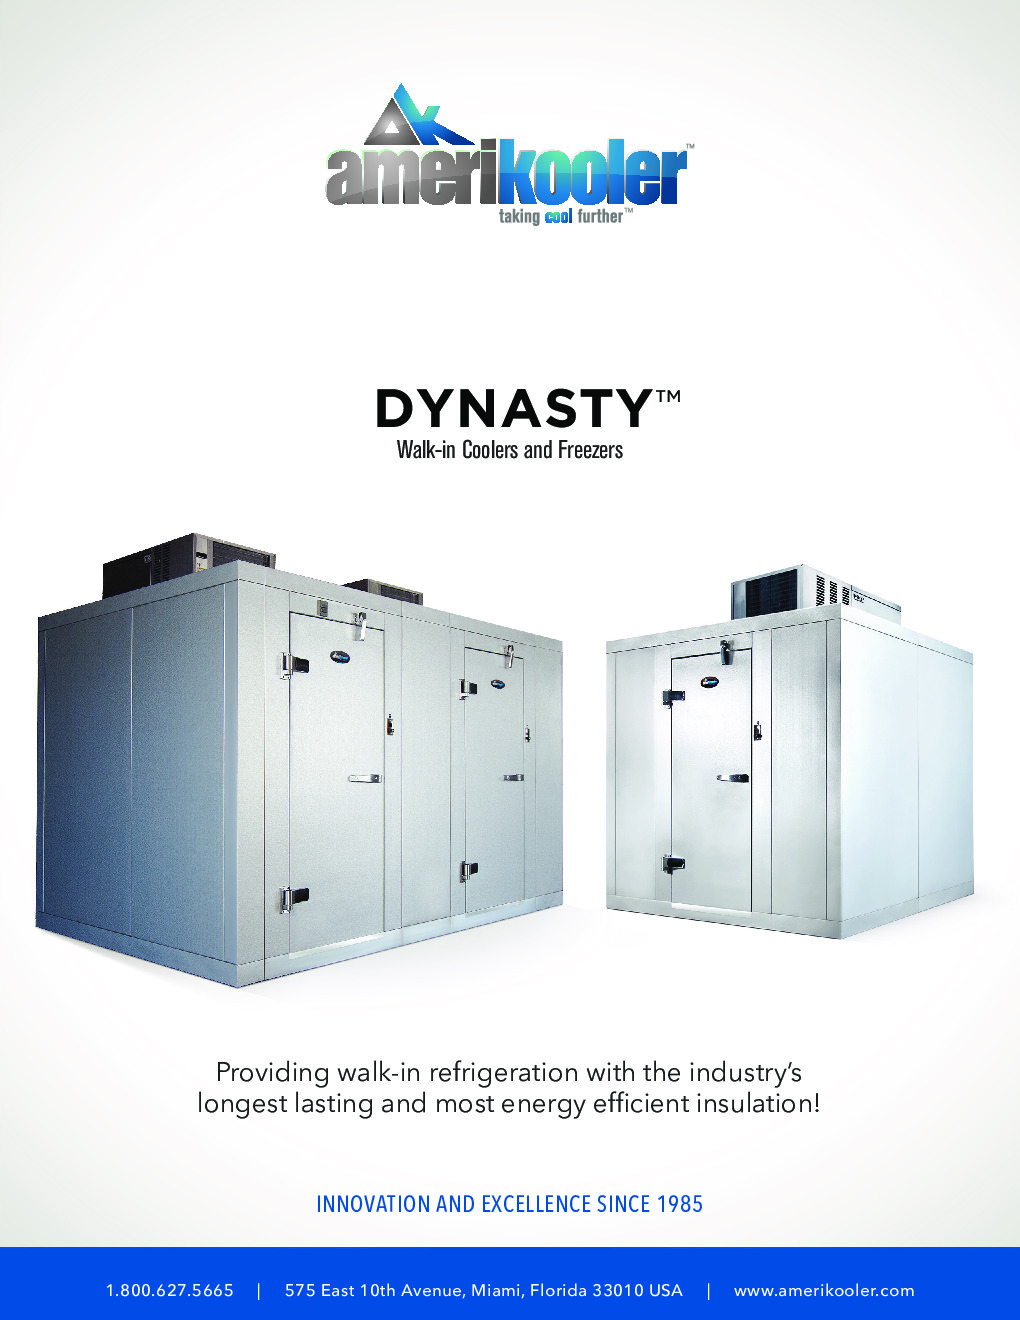 AmeriKooler DW081577F-4/11-SC 8' X 15' Walk-In Cooler, 11' L Cooler with Floor and 4' L Freezer, Self Contained